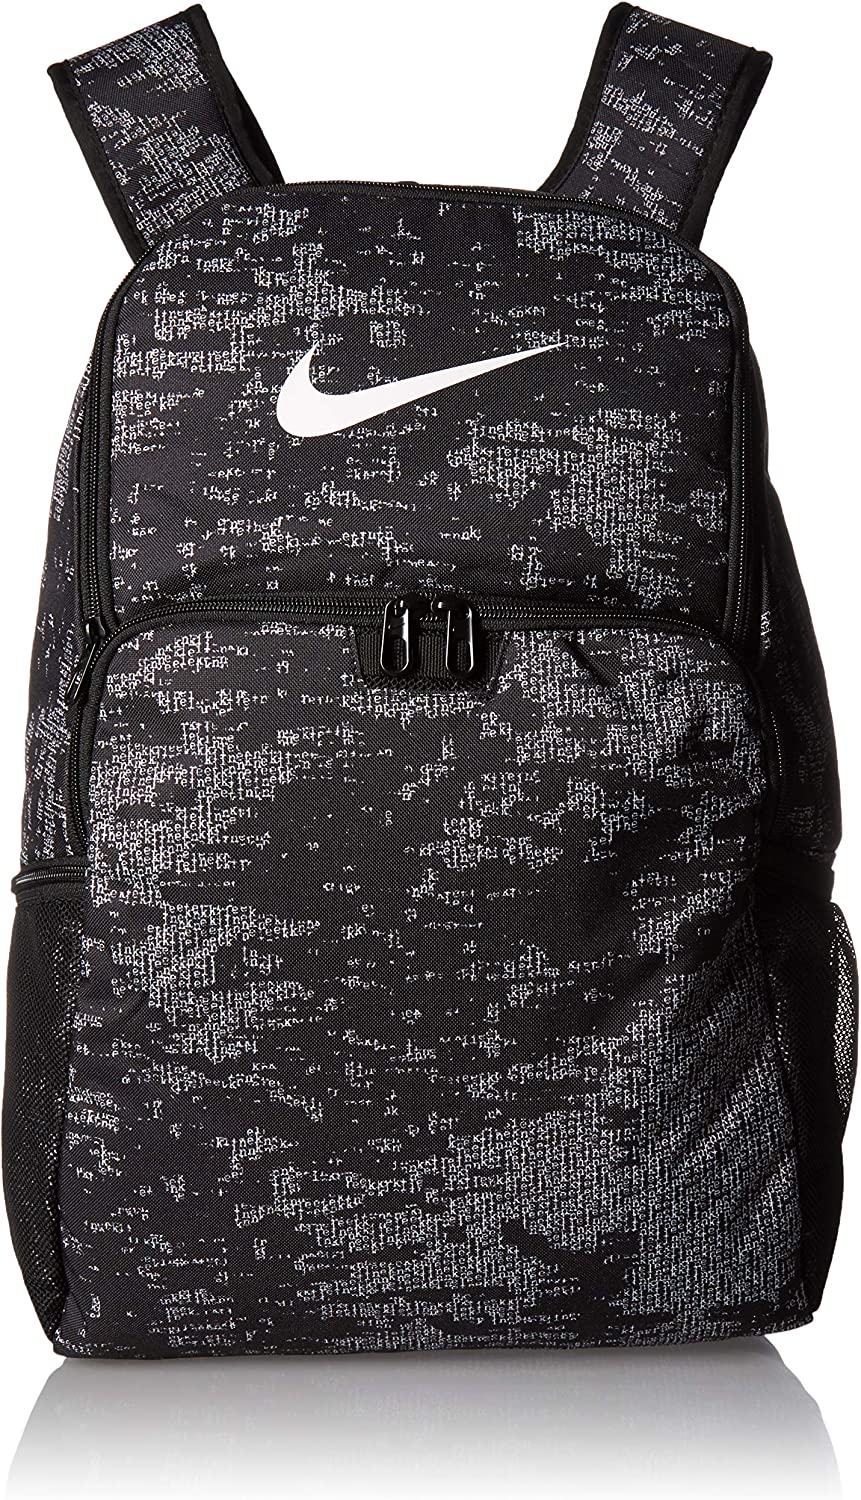 Nike unisex-adult Nike Brasilia X-large Backpack - 9.0 All Over Print